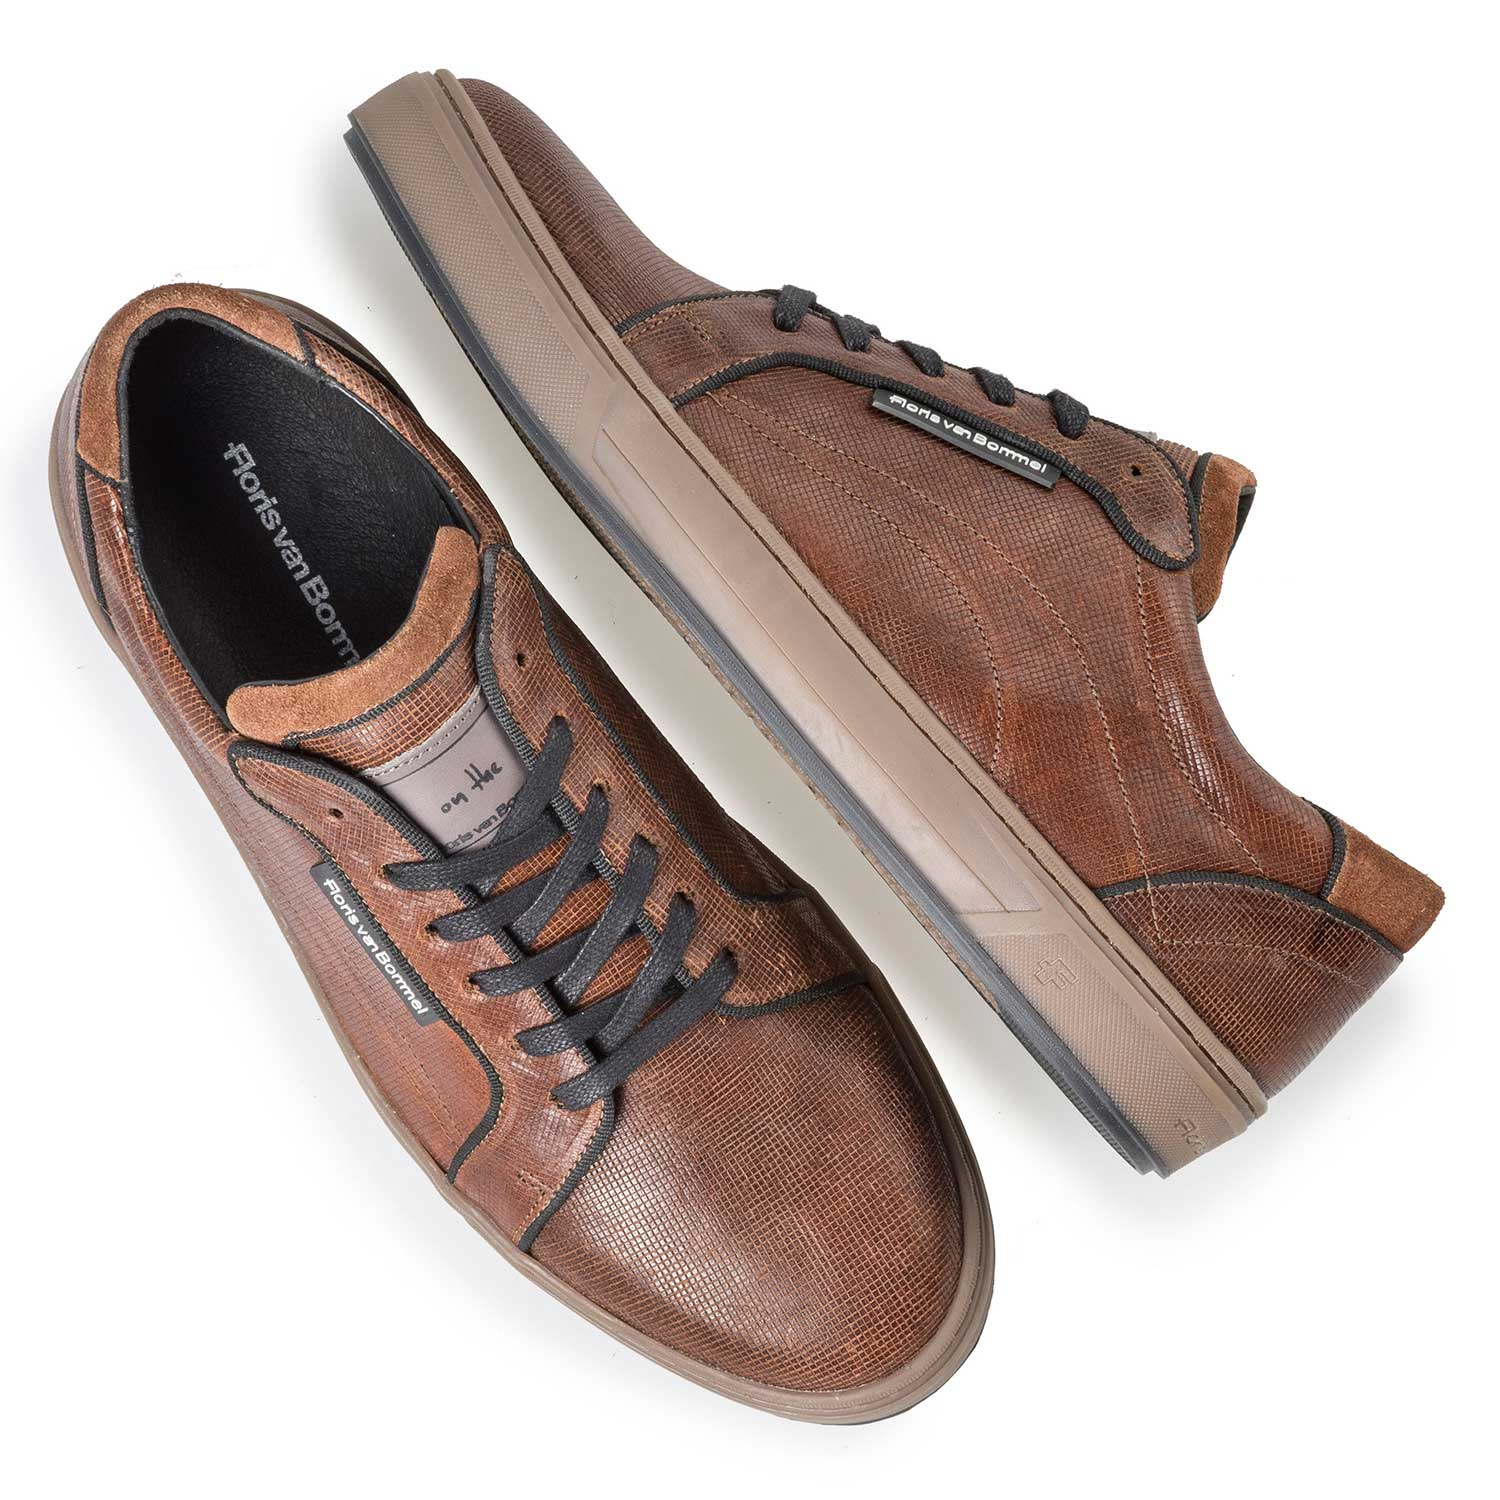 13214/02 - Brown sneaker with print